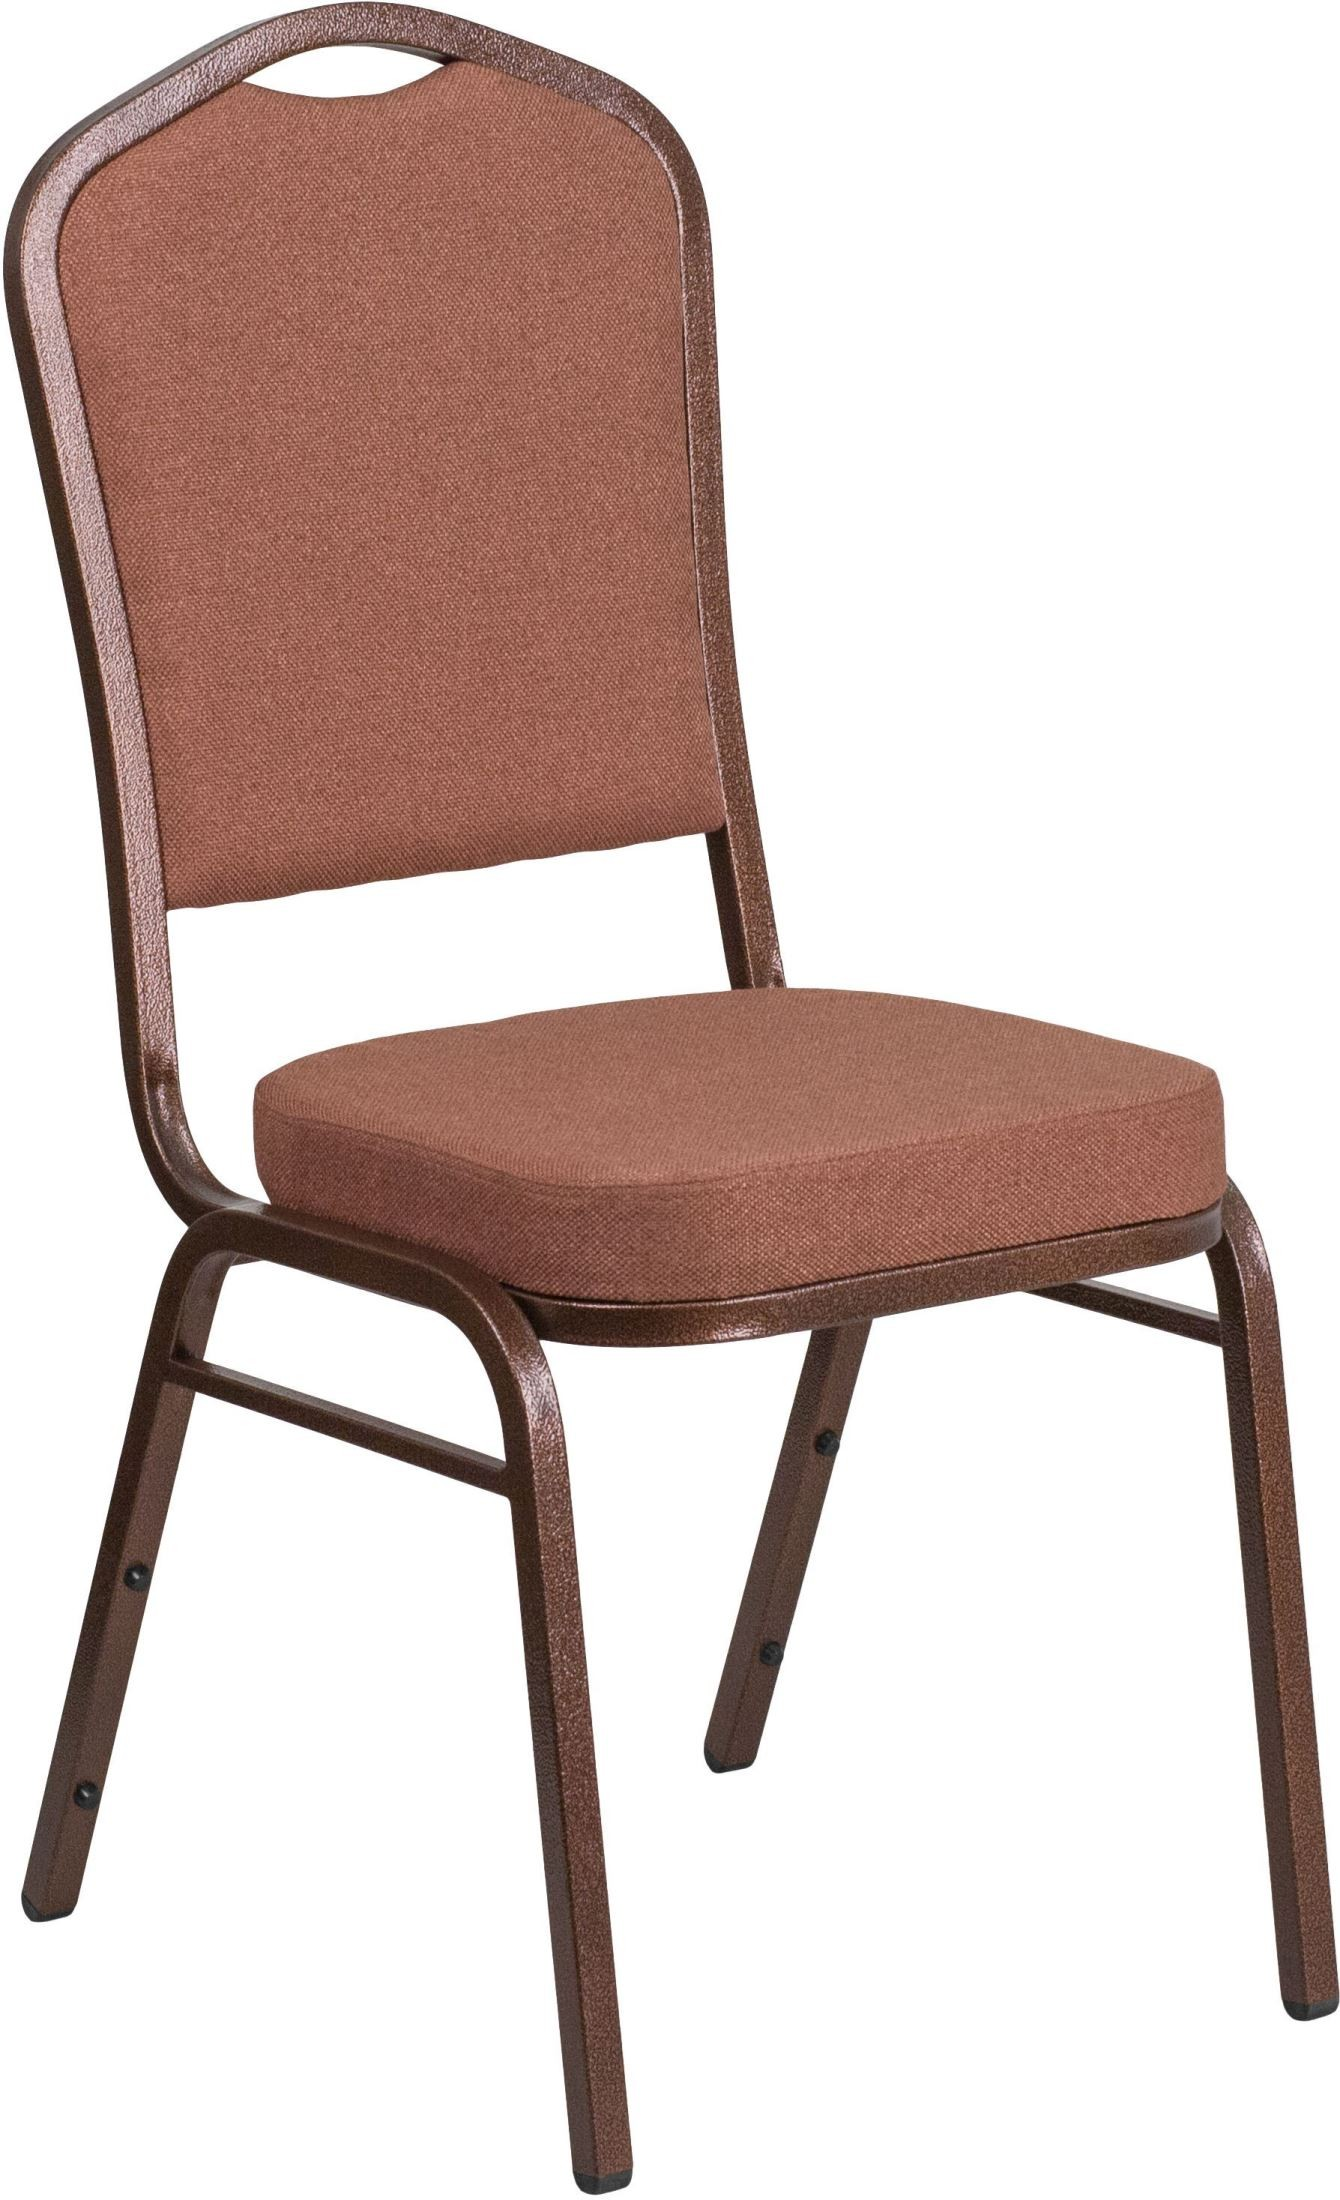 Hercules Stacking Chairs 31716 Hercules Series Crown Back Brown Fabric Stacking